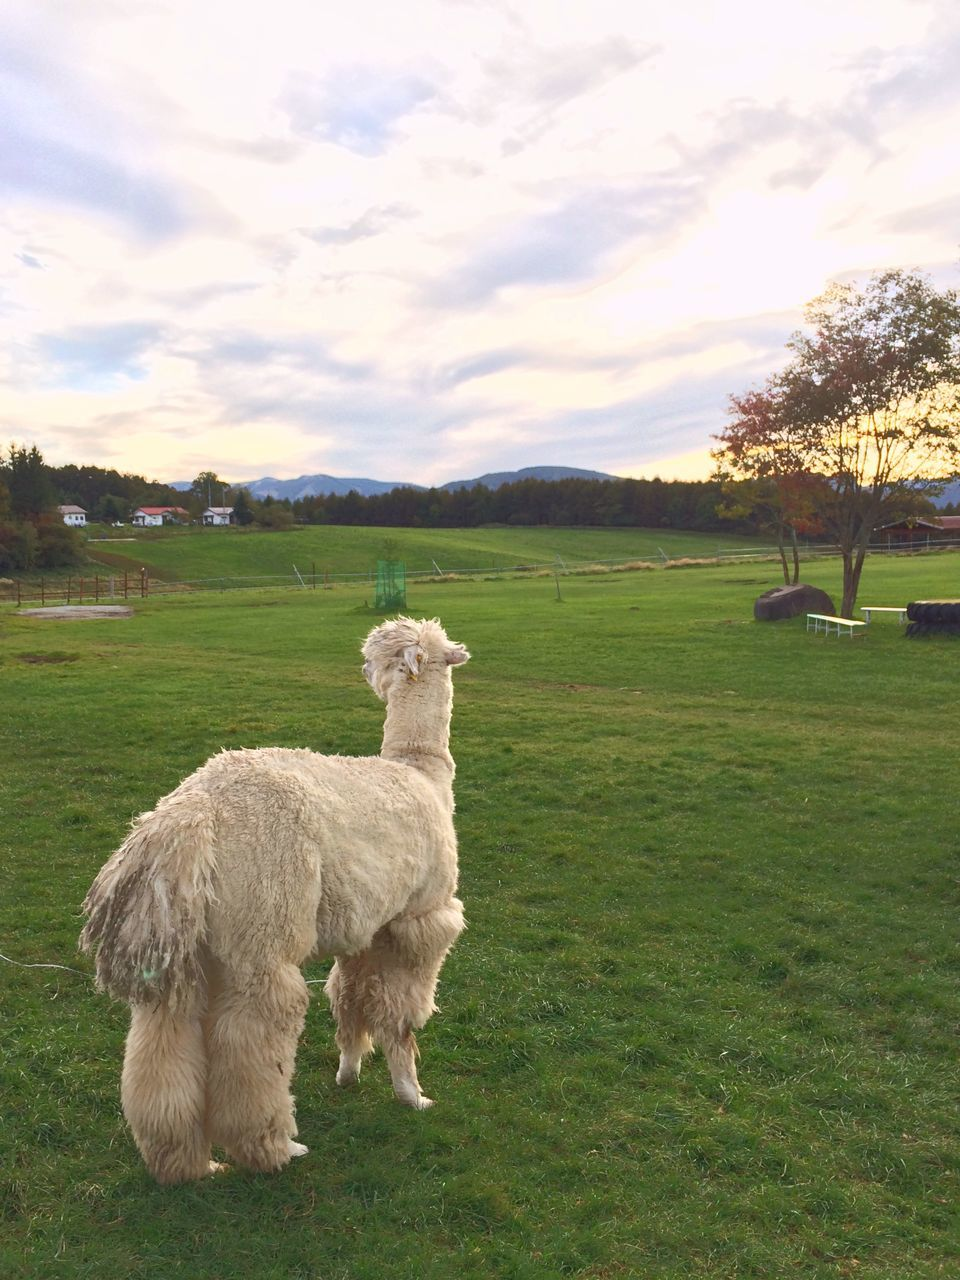 Rear View Of Alpaca On Grass Against Sky